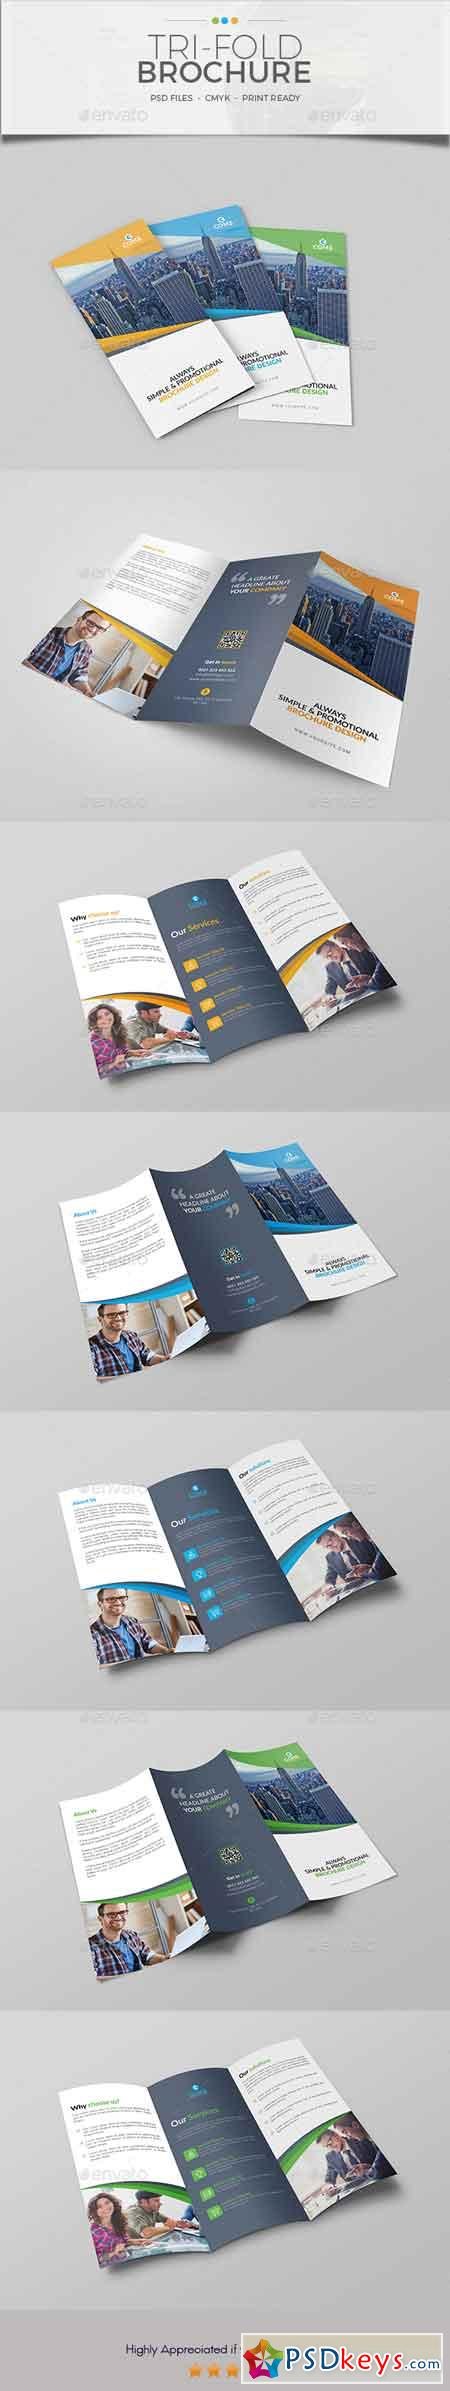 Trifold Brochure Template 13 20566772